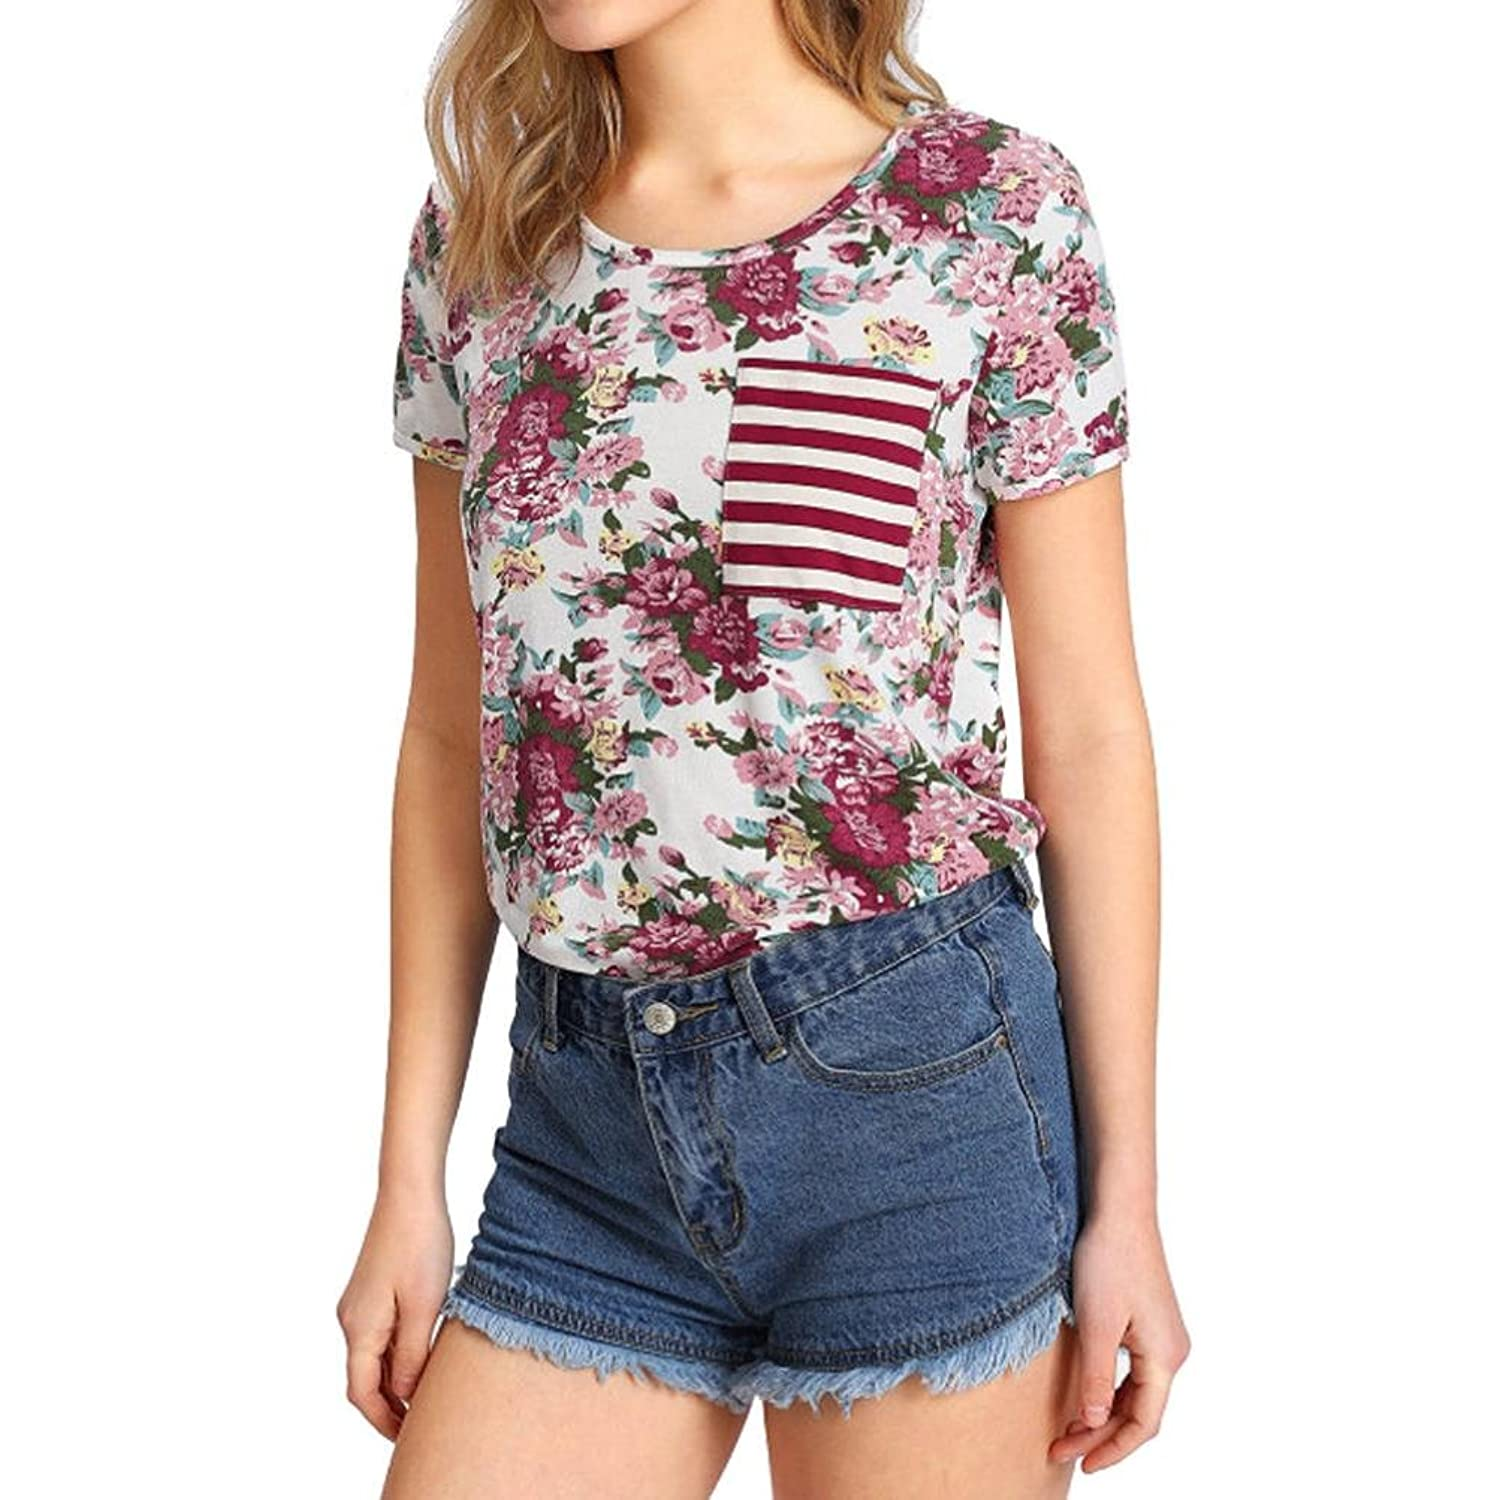 Causel T-Shirt Tops For Women Girls Teens,[Cotton Short Sleeve T-Shirt With Pocket ]-Simple Style